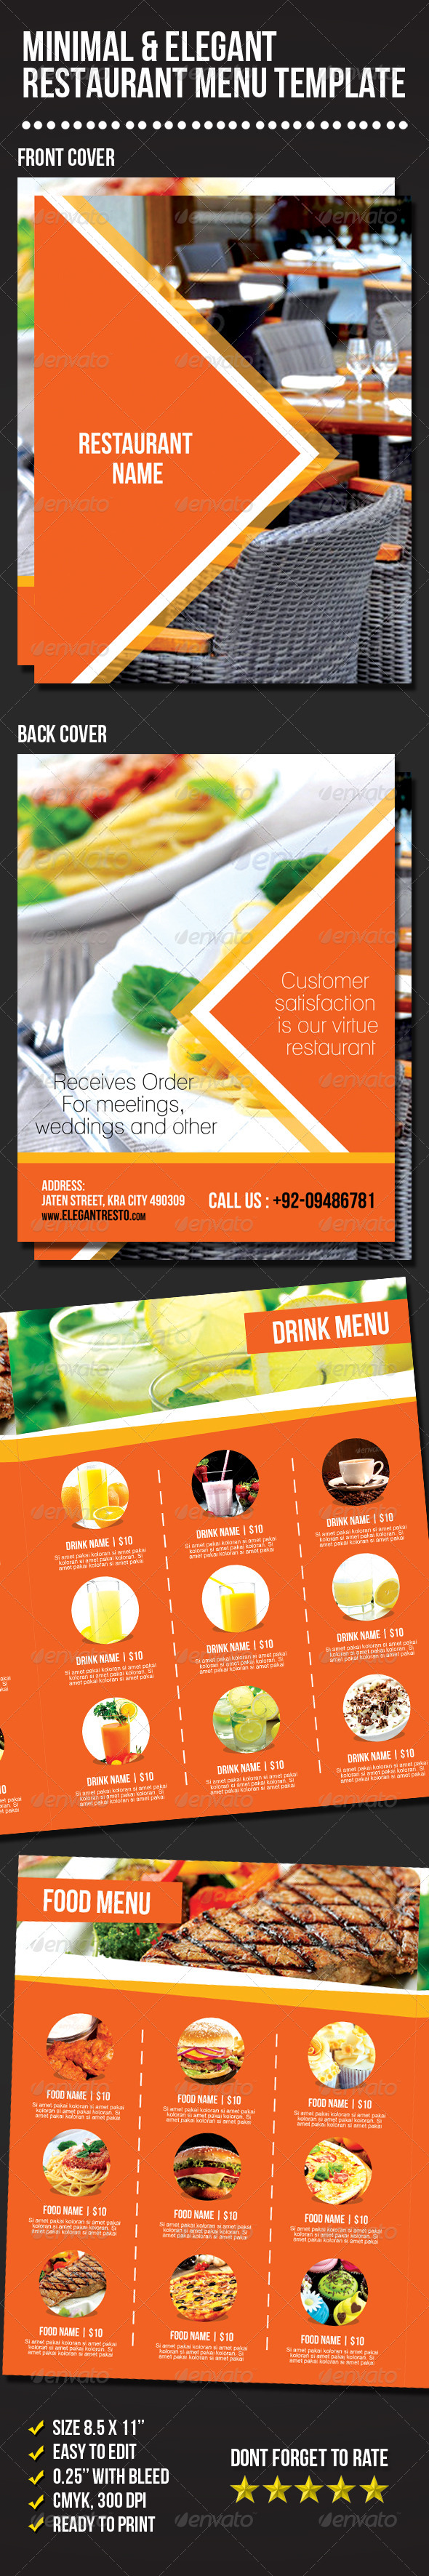 GraphicRiver Minimal & Elegant Restaurant Menu Template 6898637